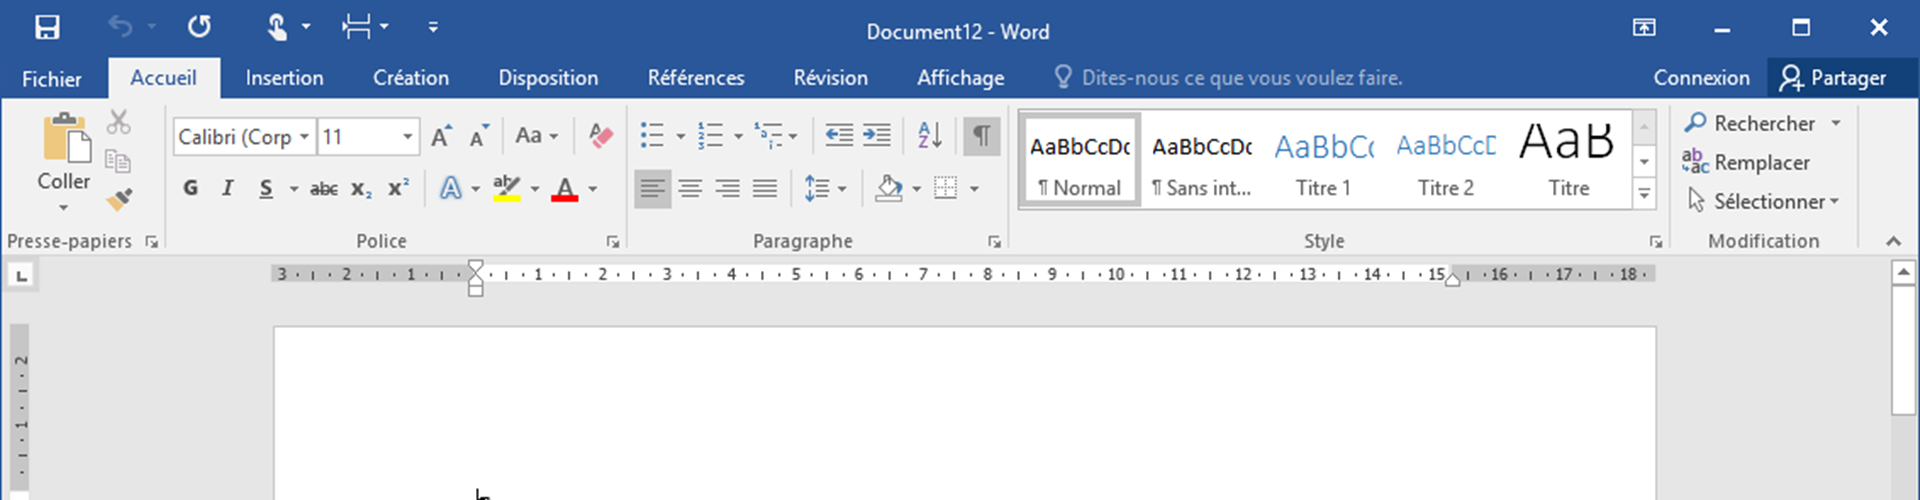 L'interface de Word